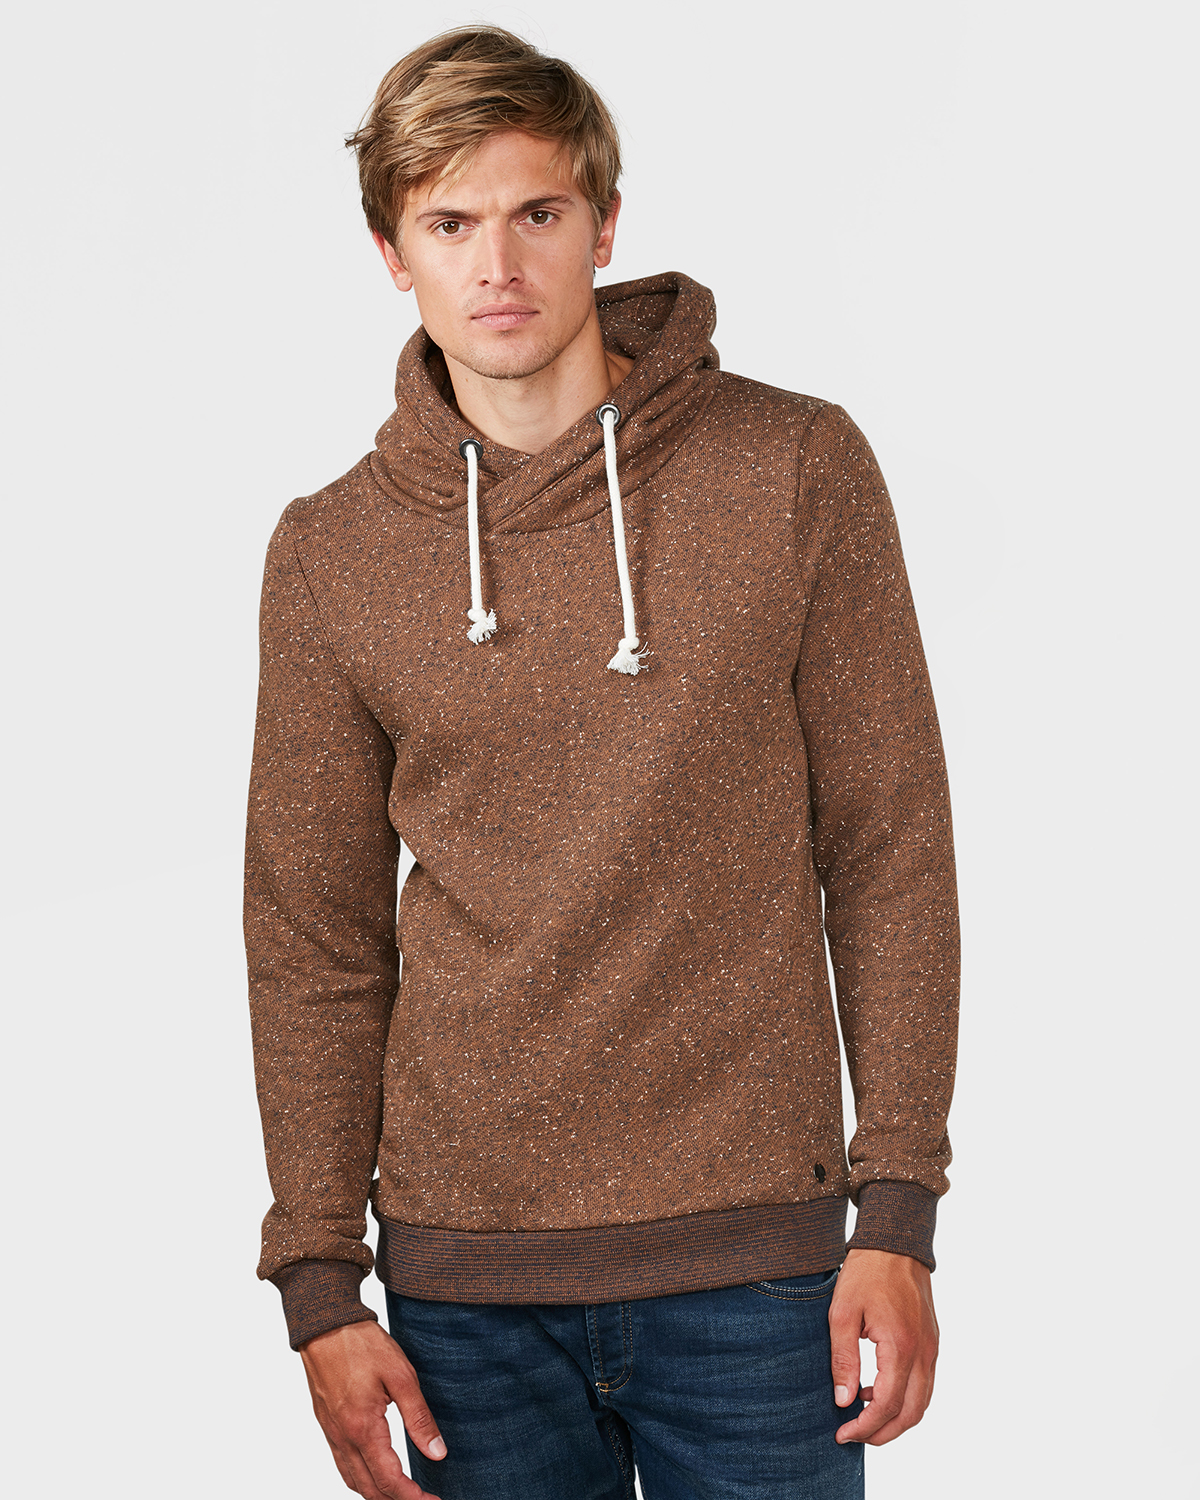 sweat shirt hooded neppy structure homme 79507974 we. Black Bedroom Furniture Sets. Home Design Ideas